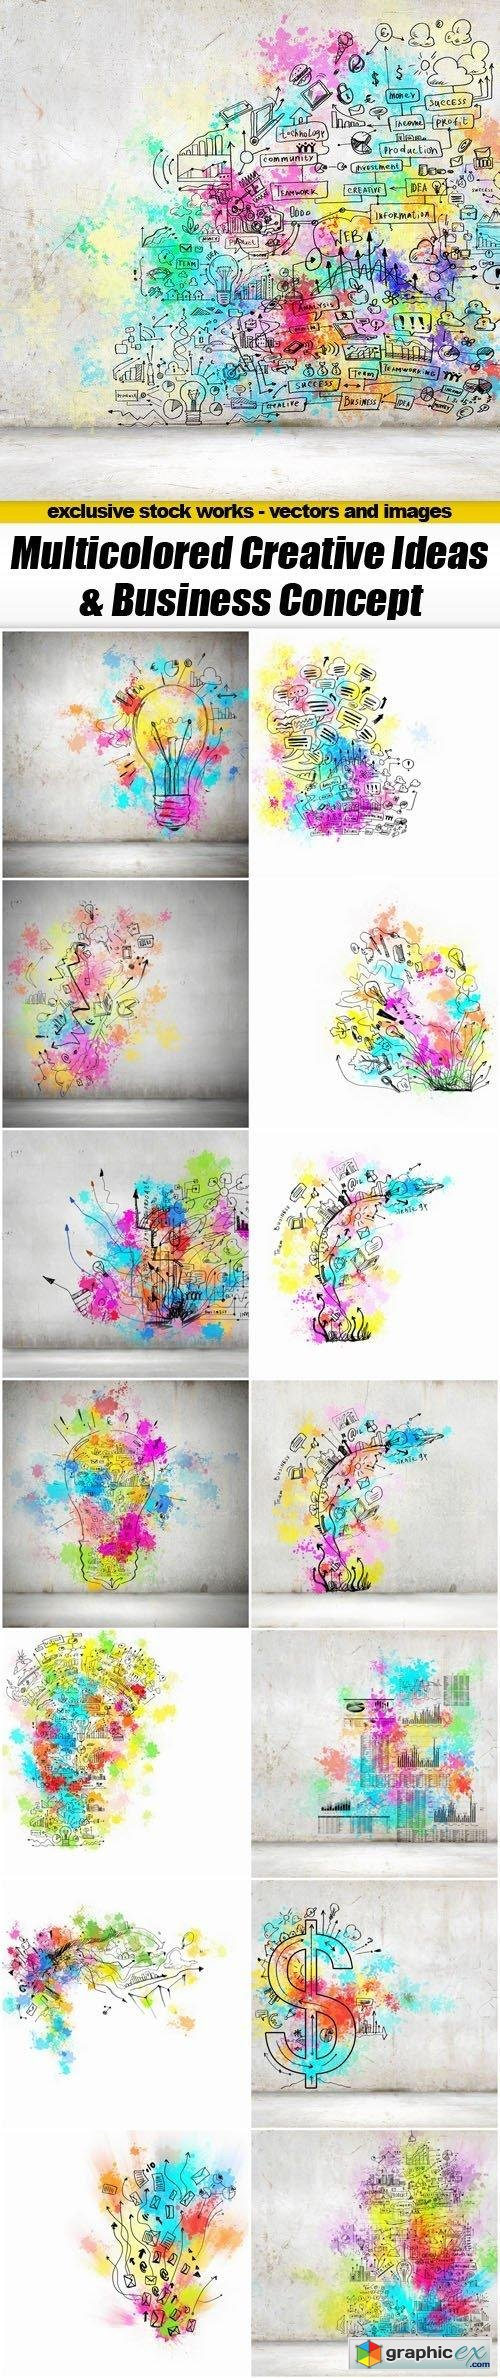 Multicolored Creative Ideas & Business Concept - 15xUHQ JPEG